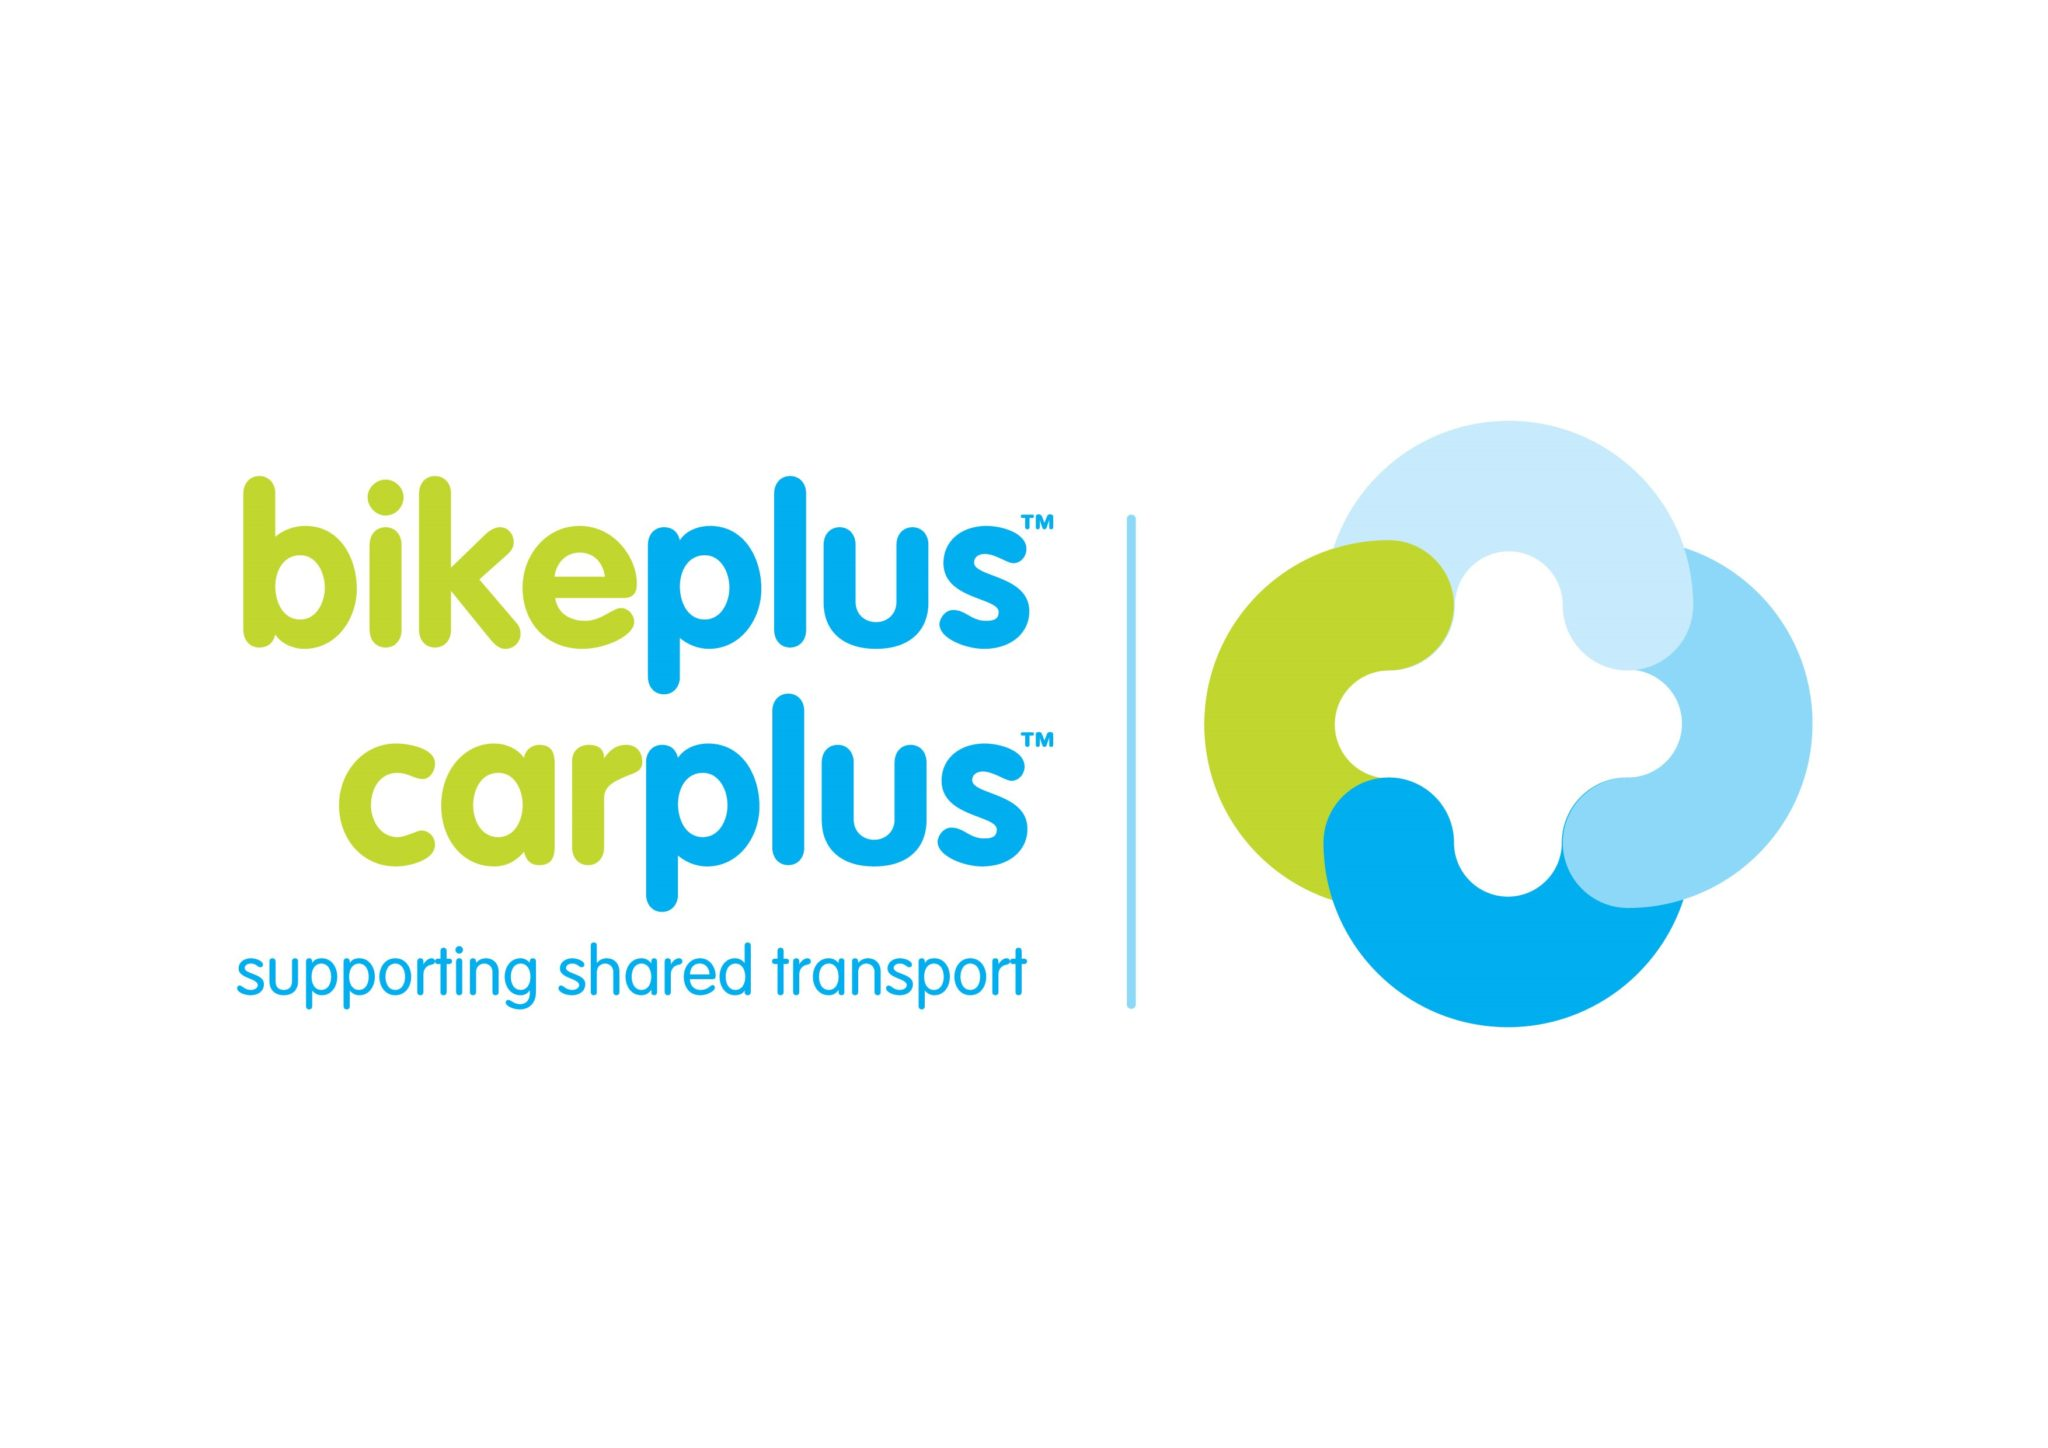 Bikeplus: Shared electric bikes launched in the UK's first mixed bike share fleet